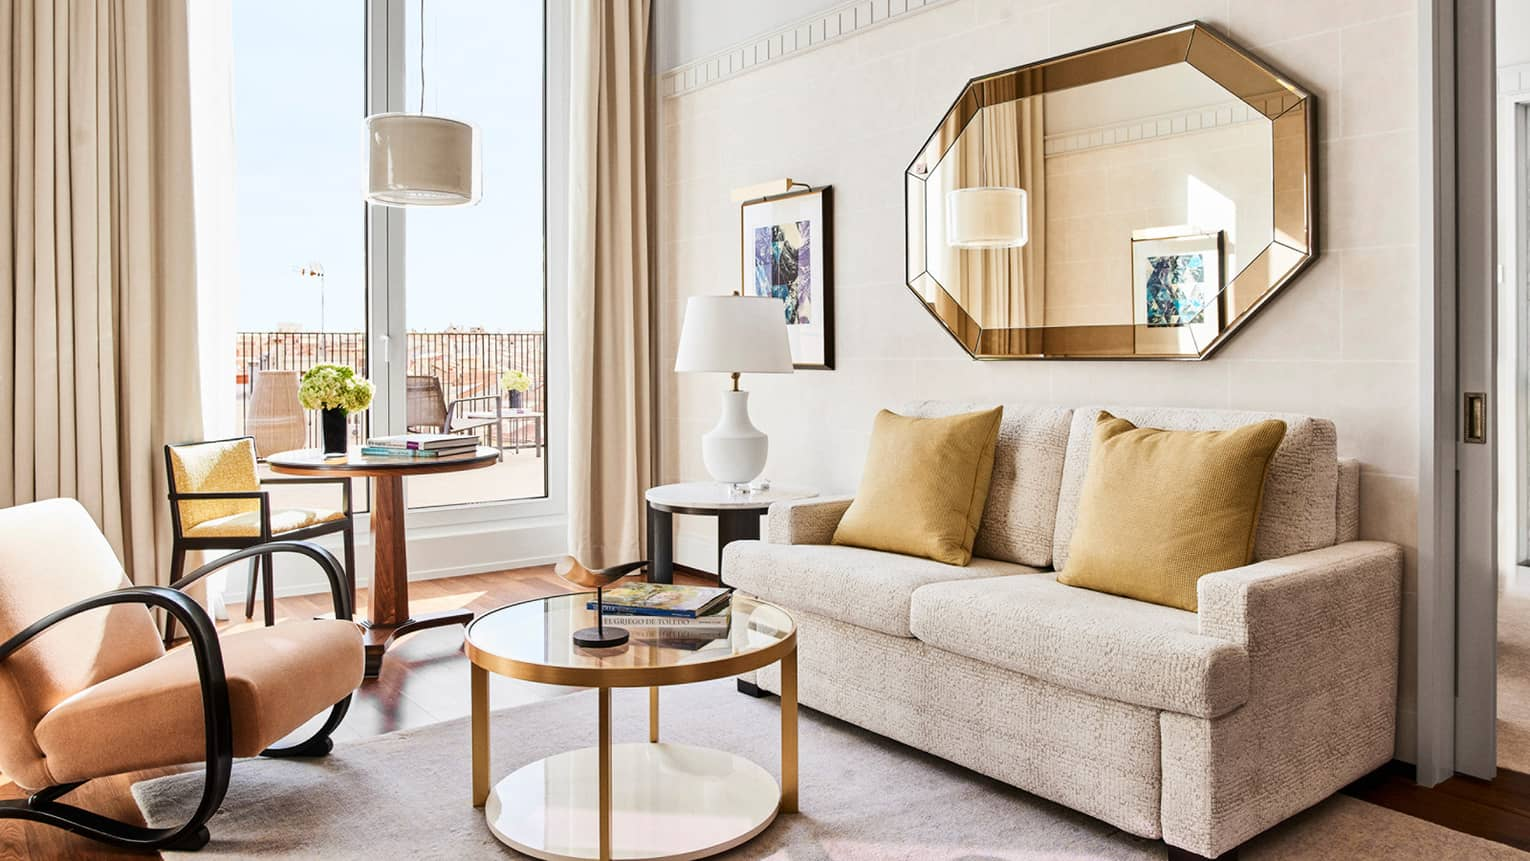 Living room with two-seat sofa, gold mirror, arm chair, round glass table, doors to terrace